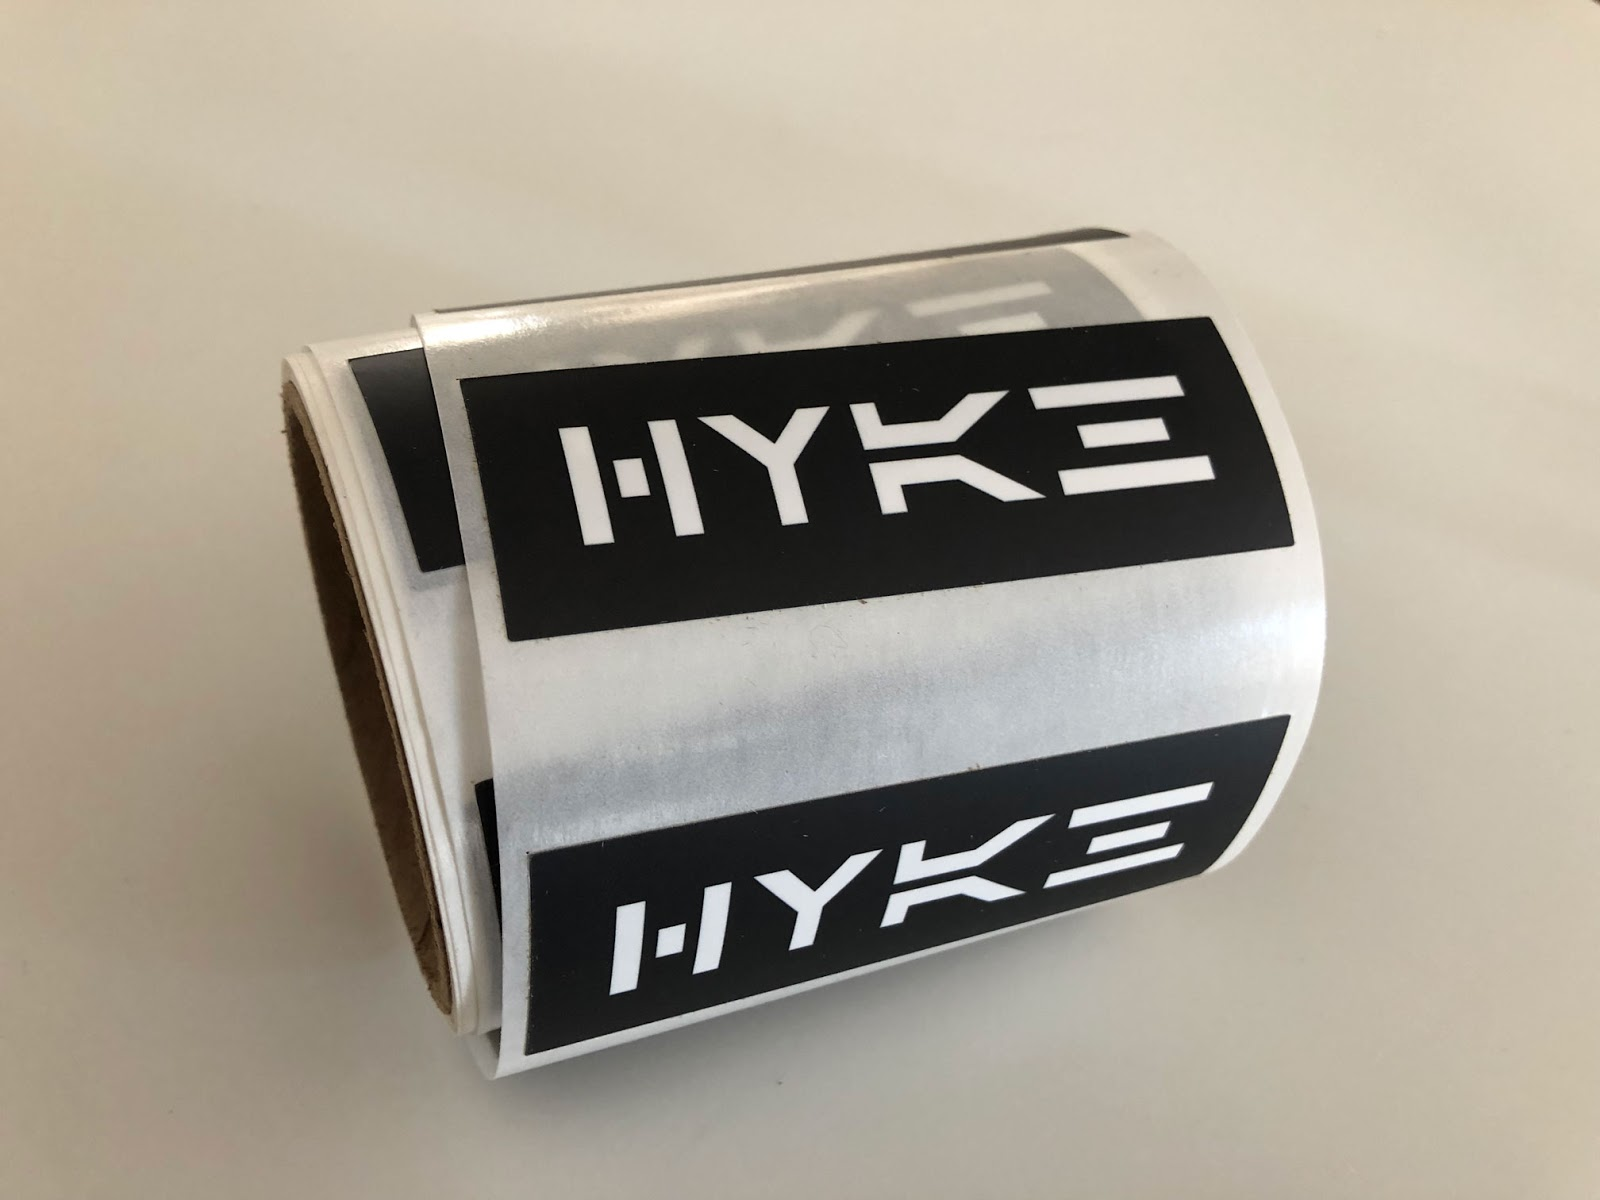 Picture showing HYKE sticker